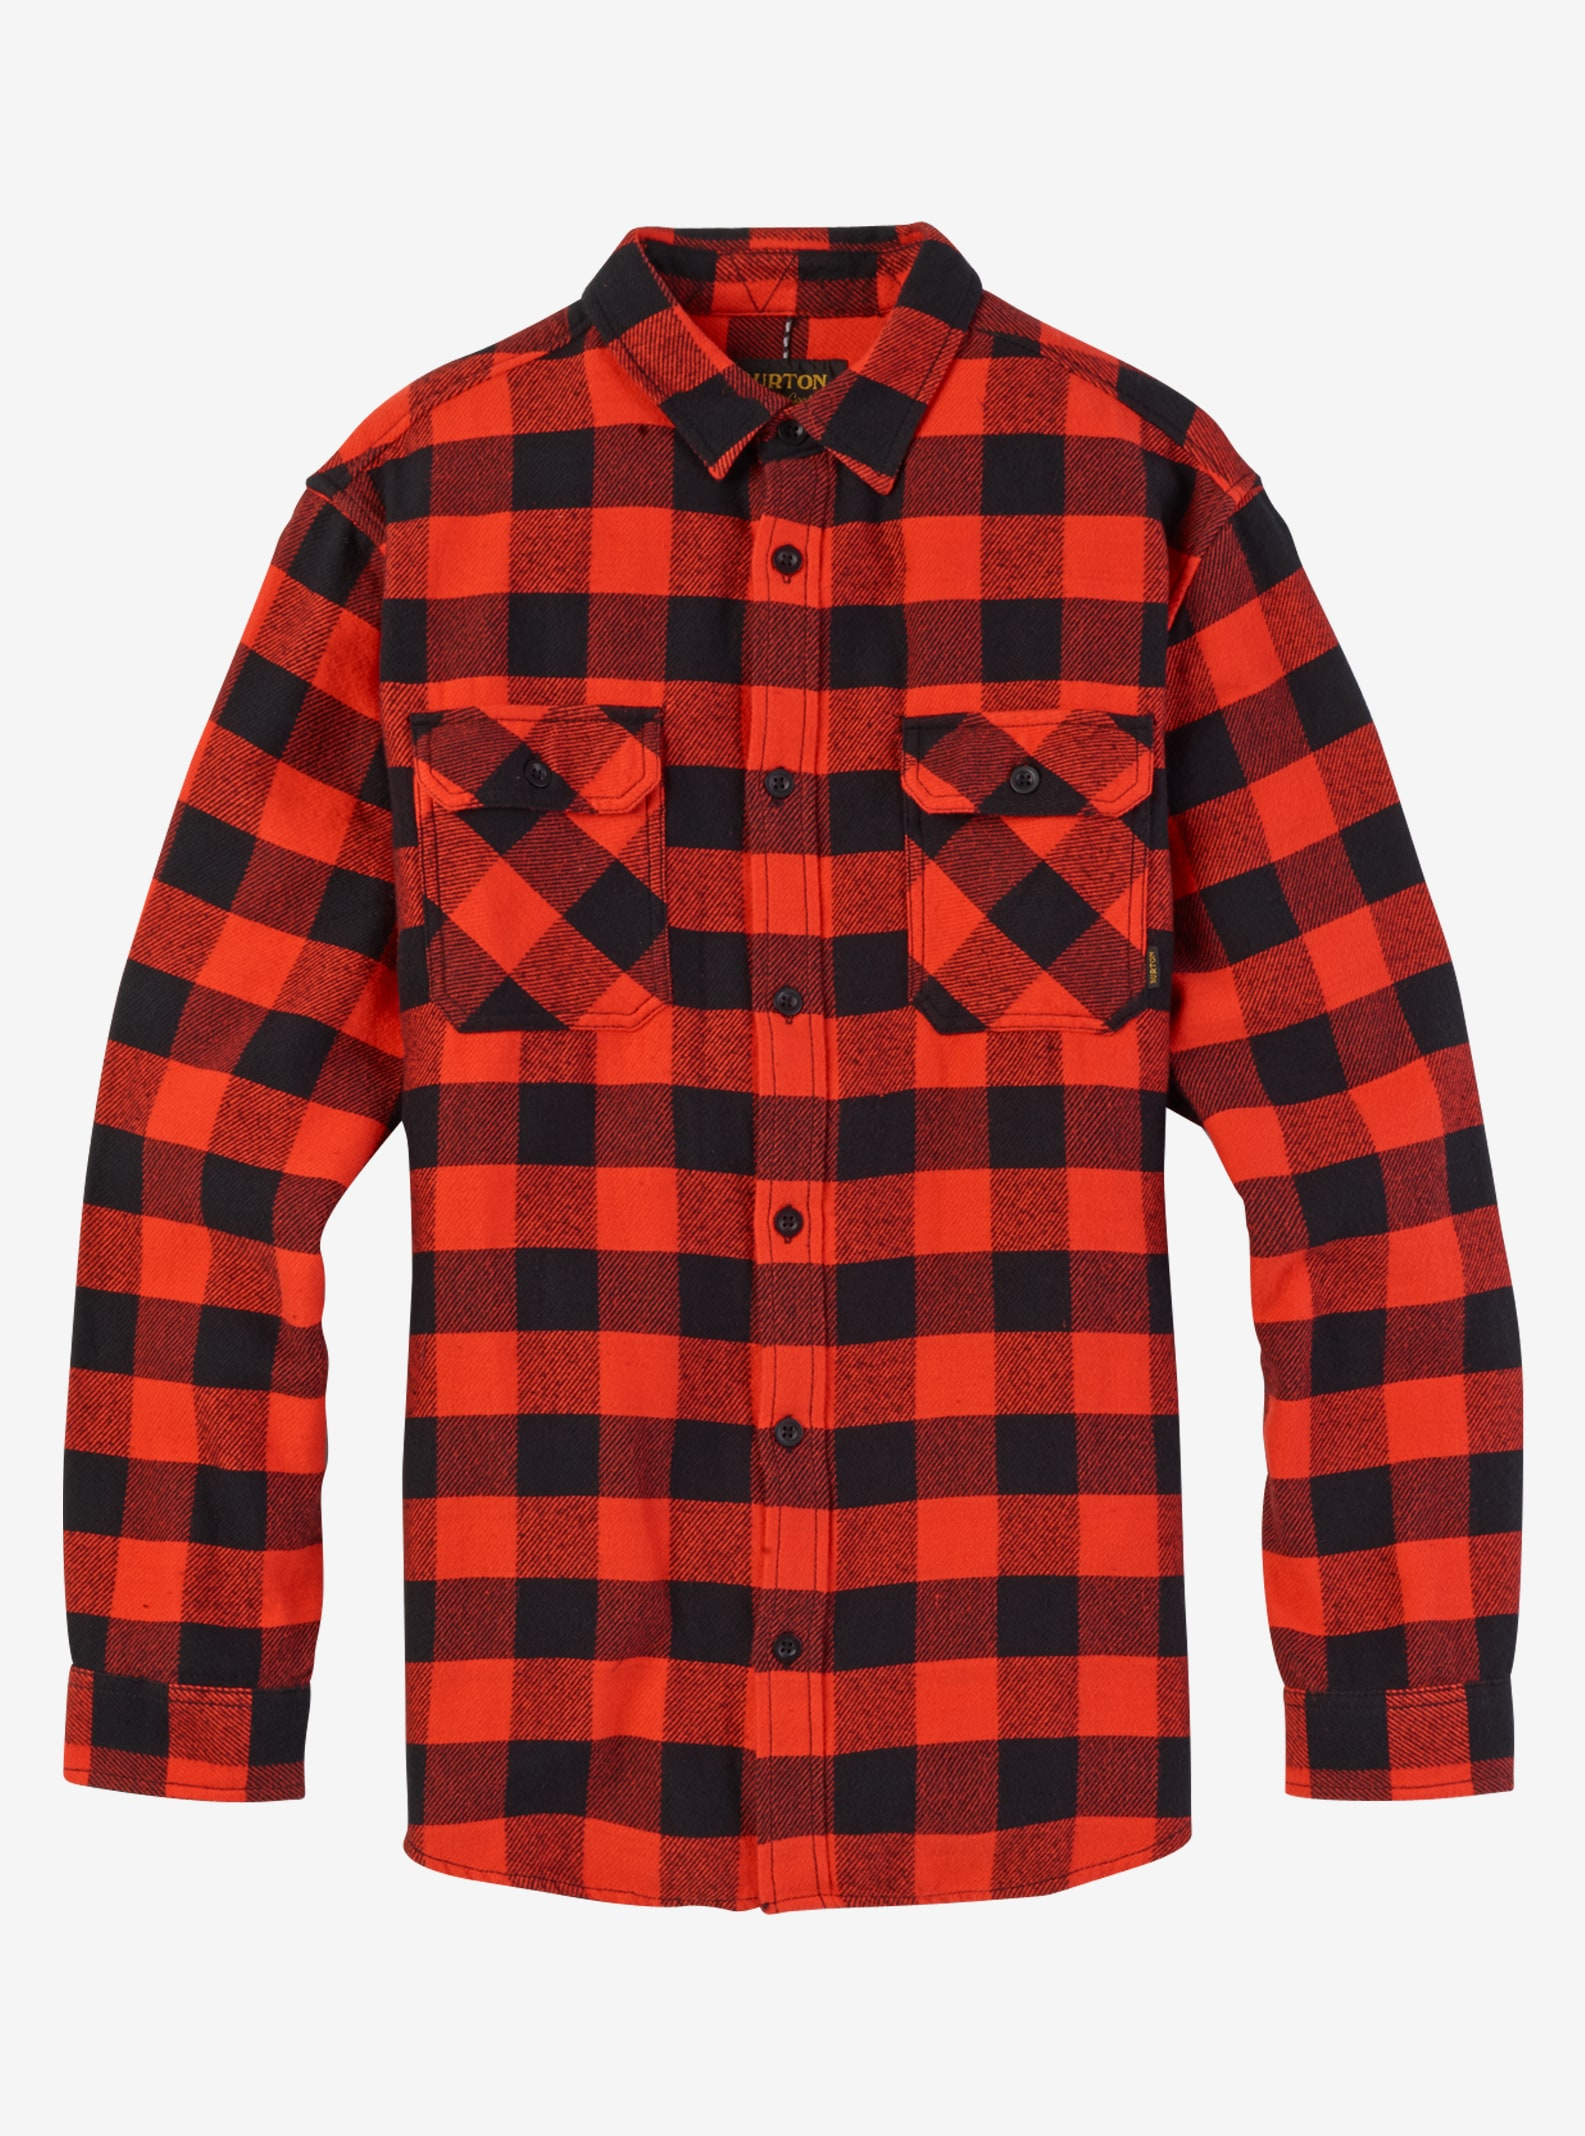 Men's Burton Brighton Burly Flannel shown in Fiery Buffalo Plaid